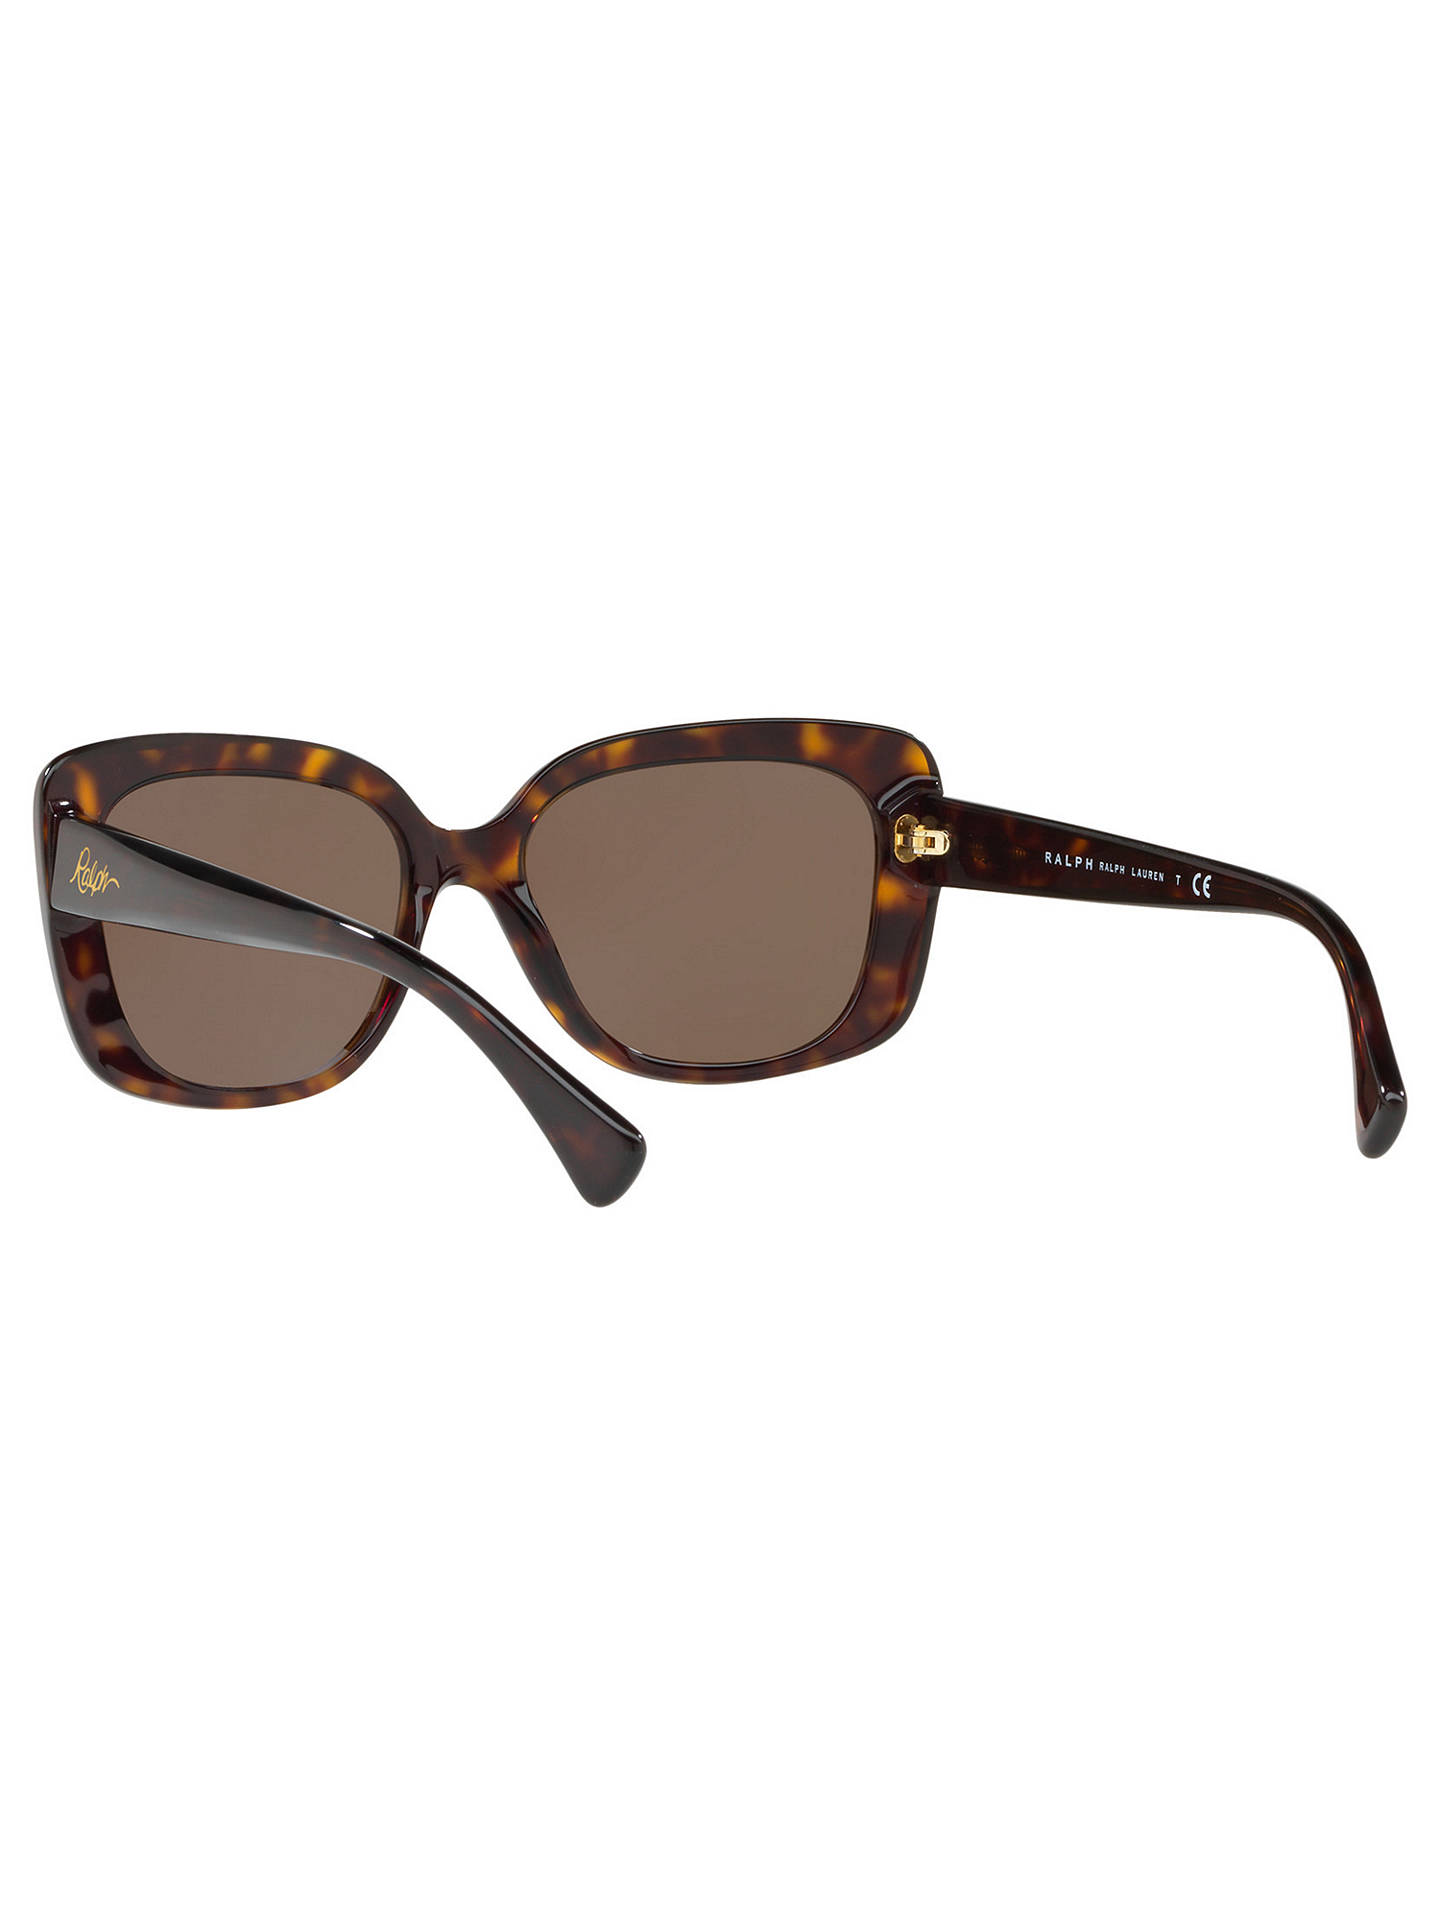 a3598a07 Ralph Lauren RA5241 Women's Square Framed Sunglasses, Tortoise/Brown